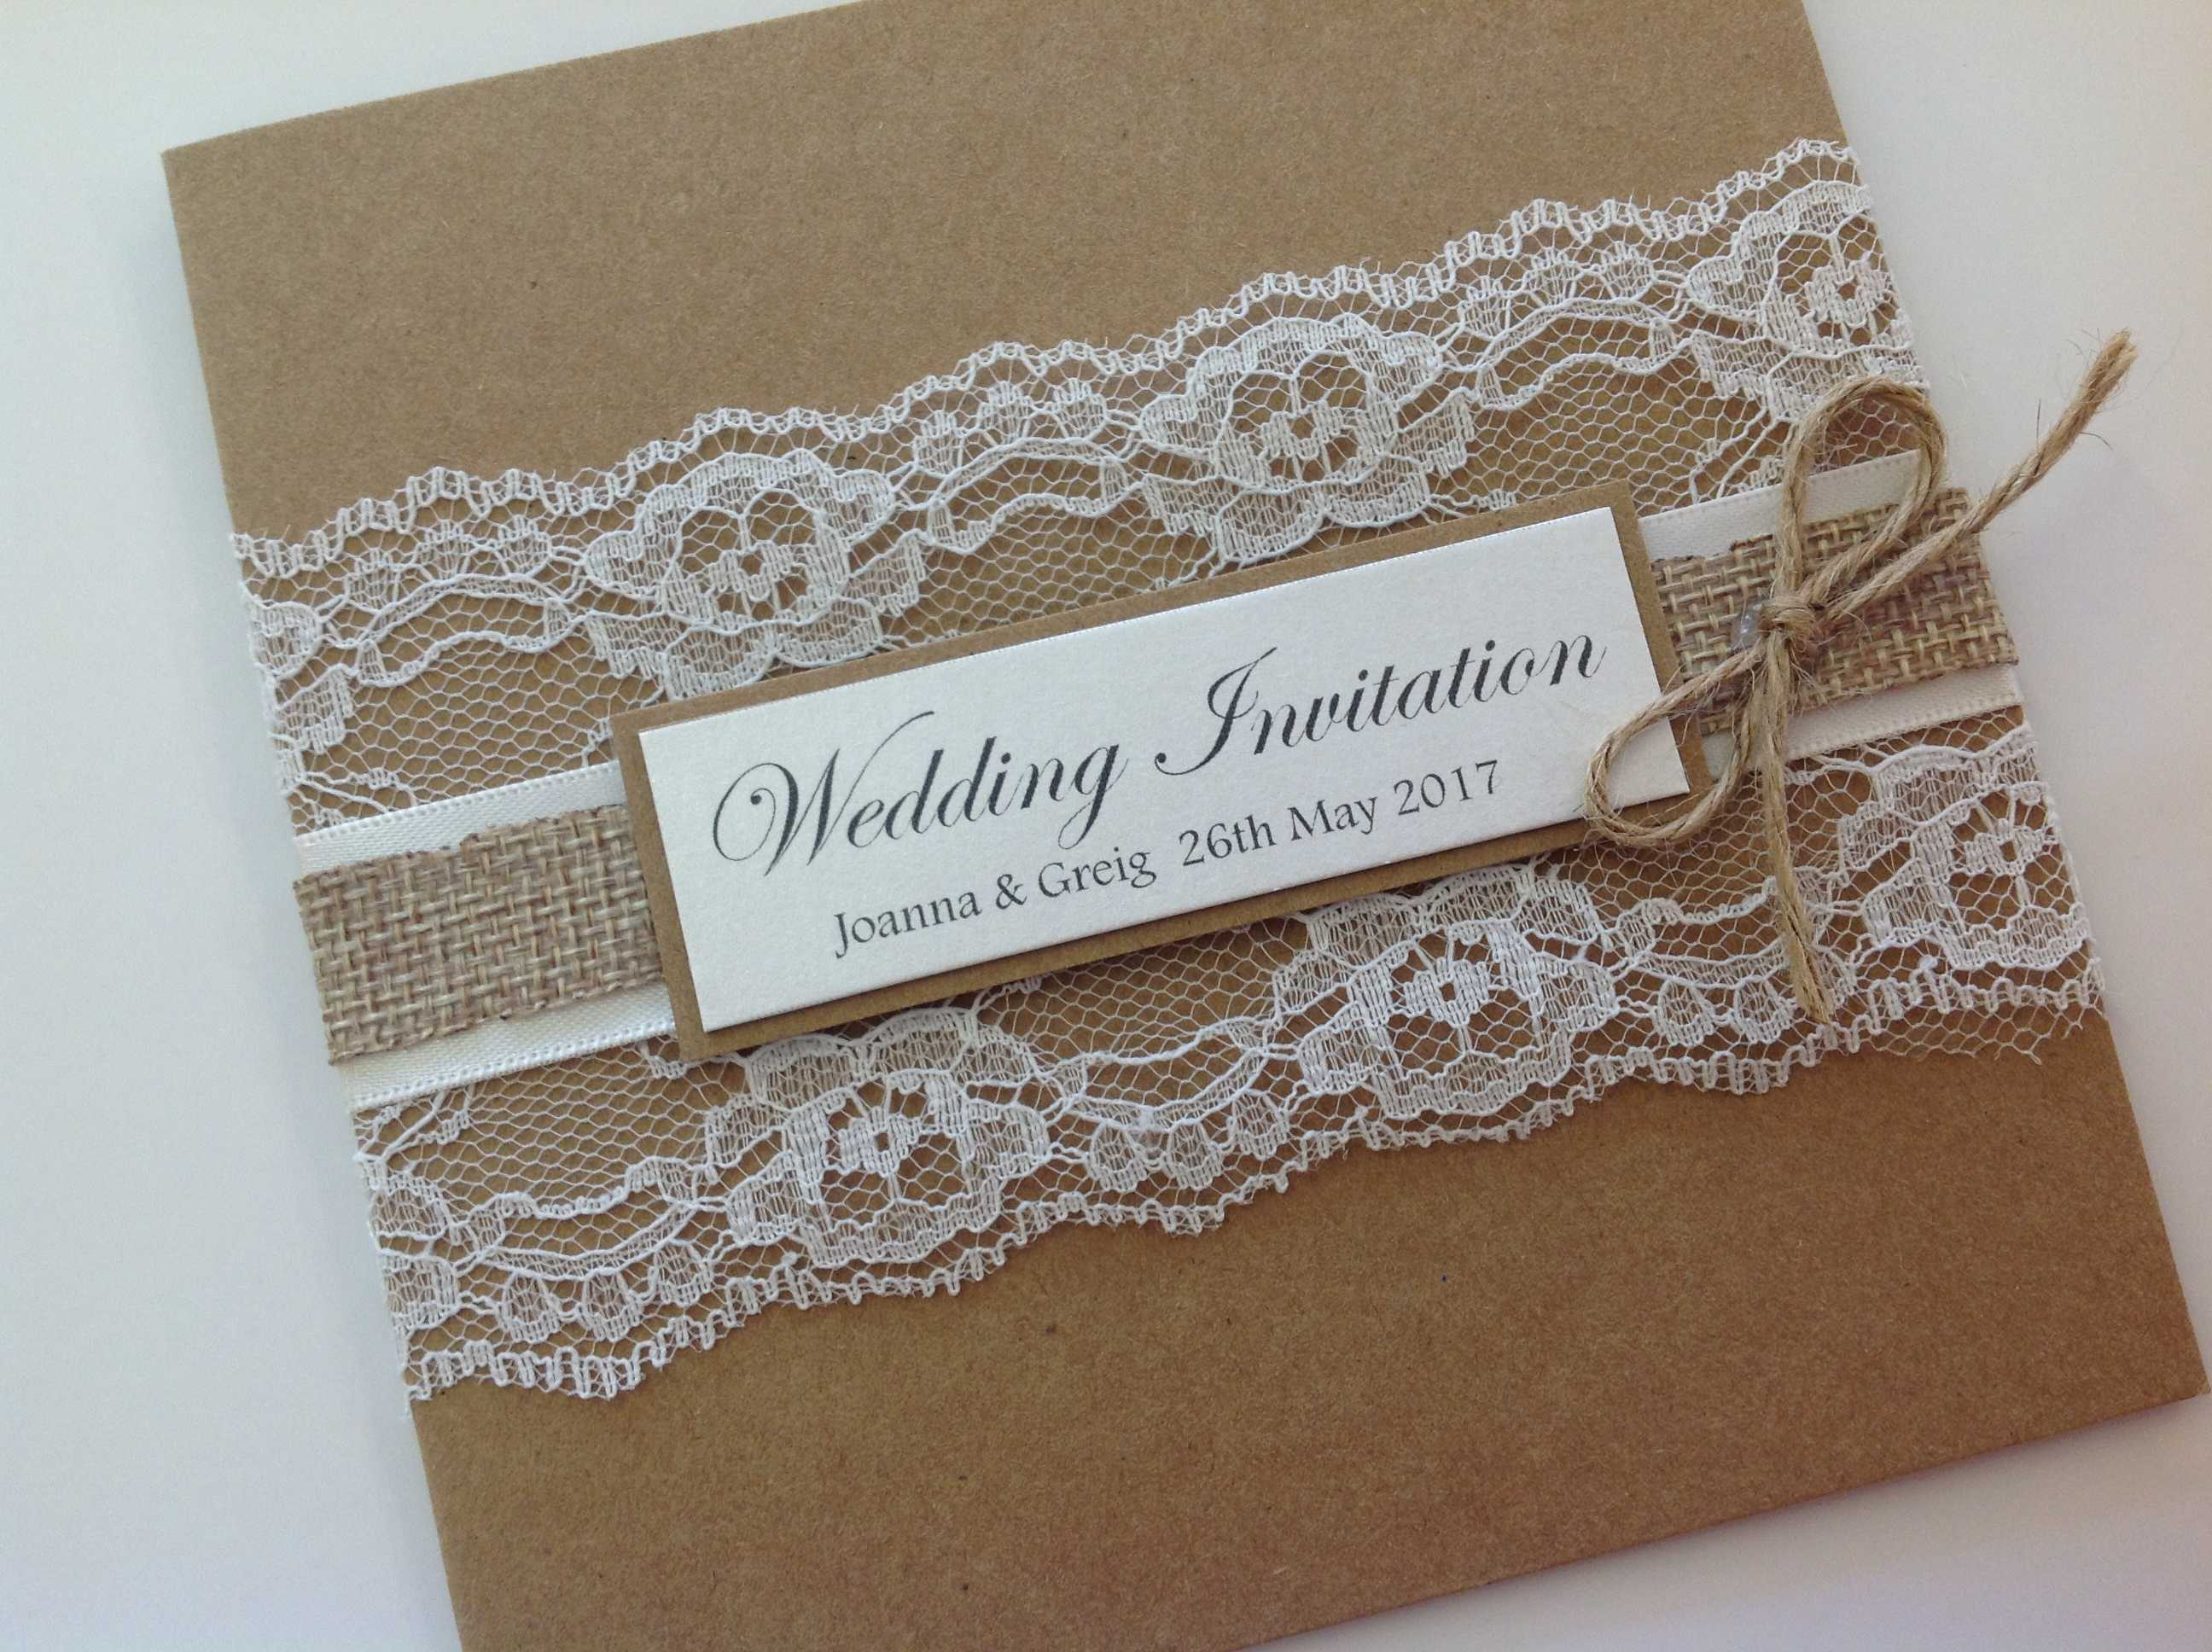 Kraft Card Invitations, Pocket style  Wedding Invitations, Glitter, Rose Gold, Rustic, Diamante, Ribbon, Layered, Lace, Menu, Reply Pearlescent Card, ivory Pearl, Matt Card